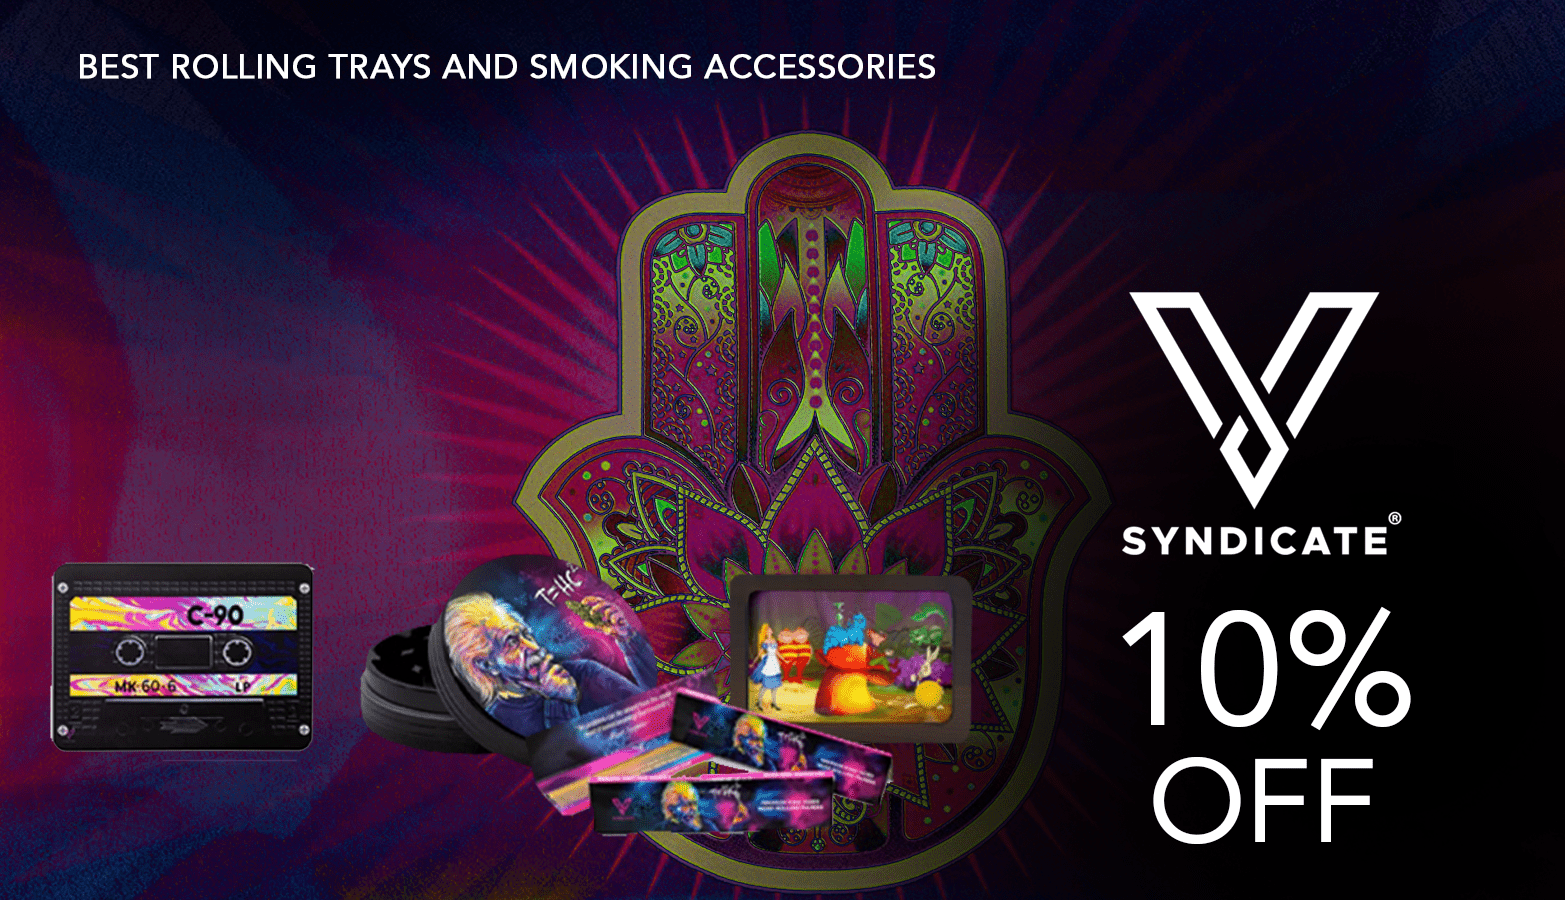 V Syndicate Coupon Code Website